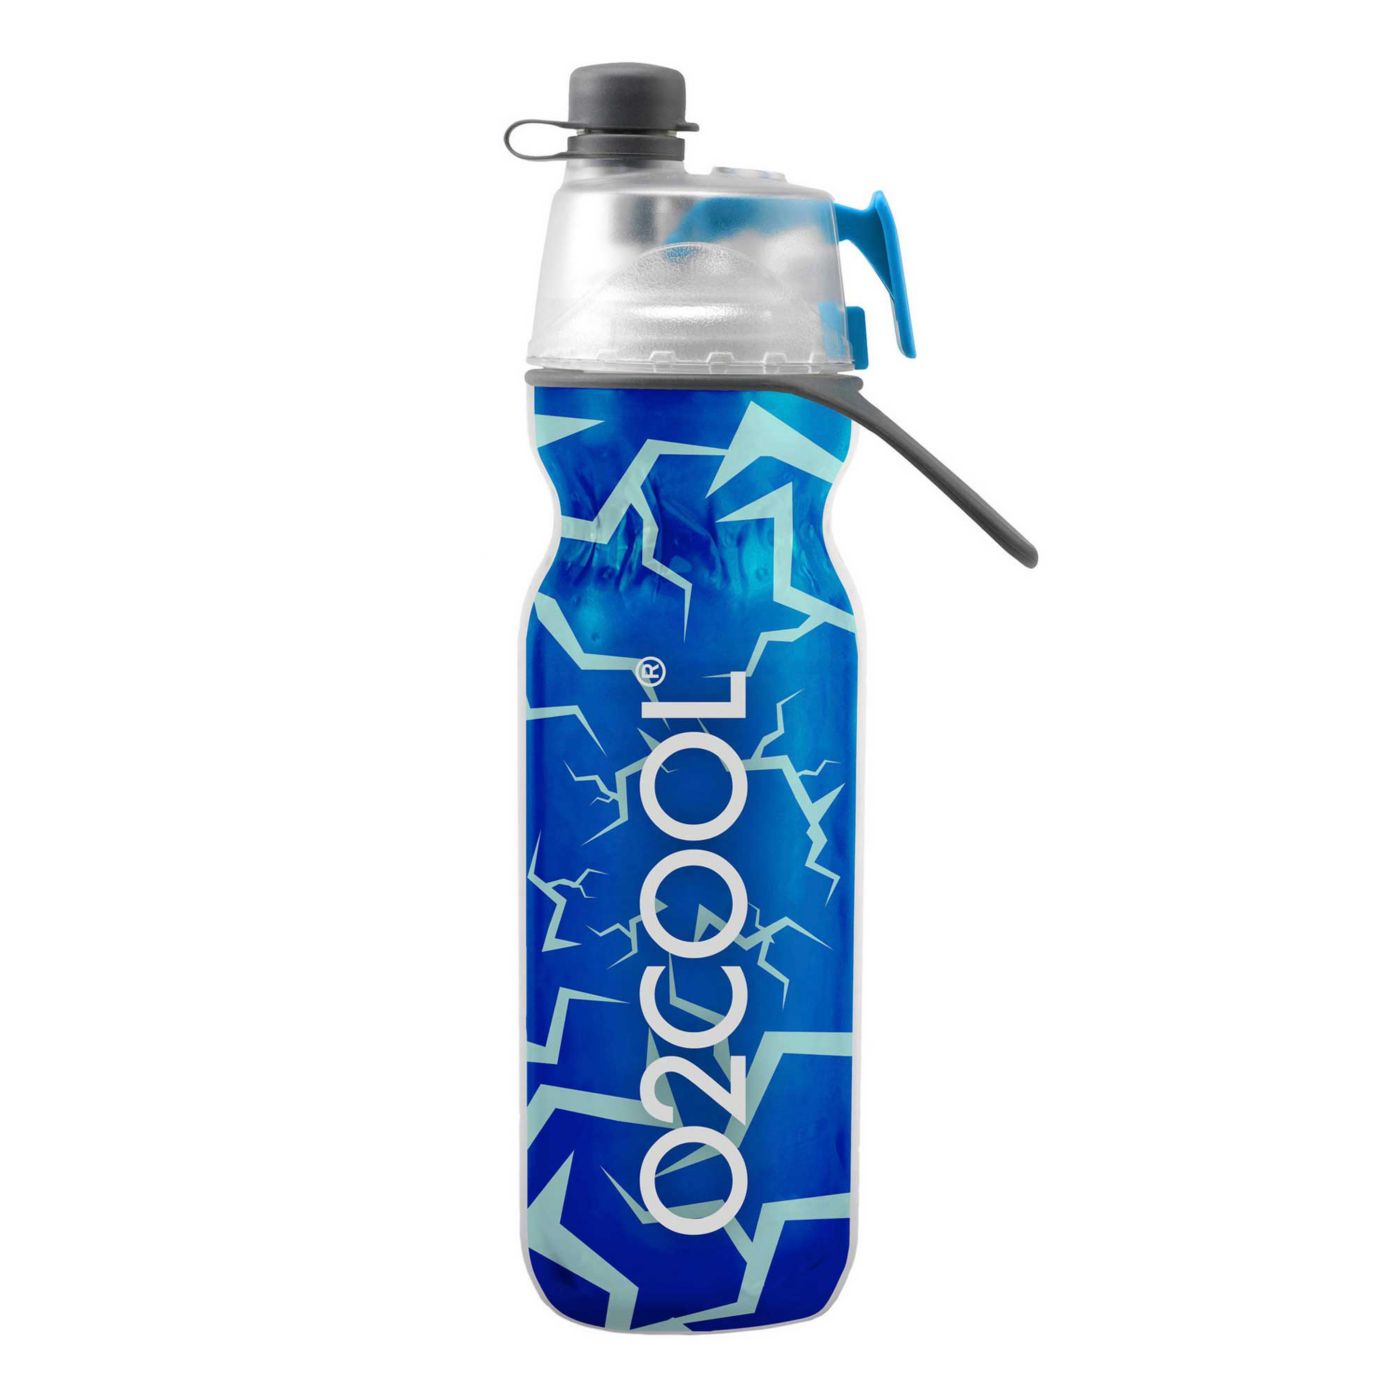 O2COOL Artic Squeeze Elite Insulated Mist N' Sip 20oz Bottle